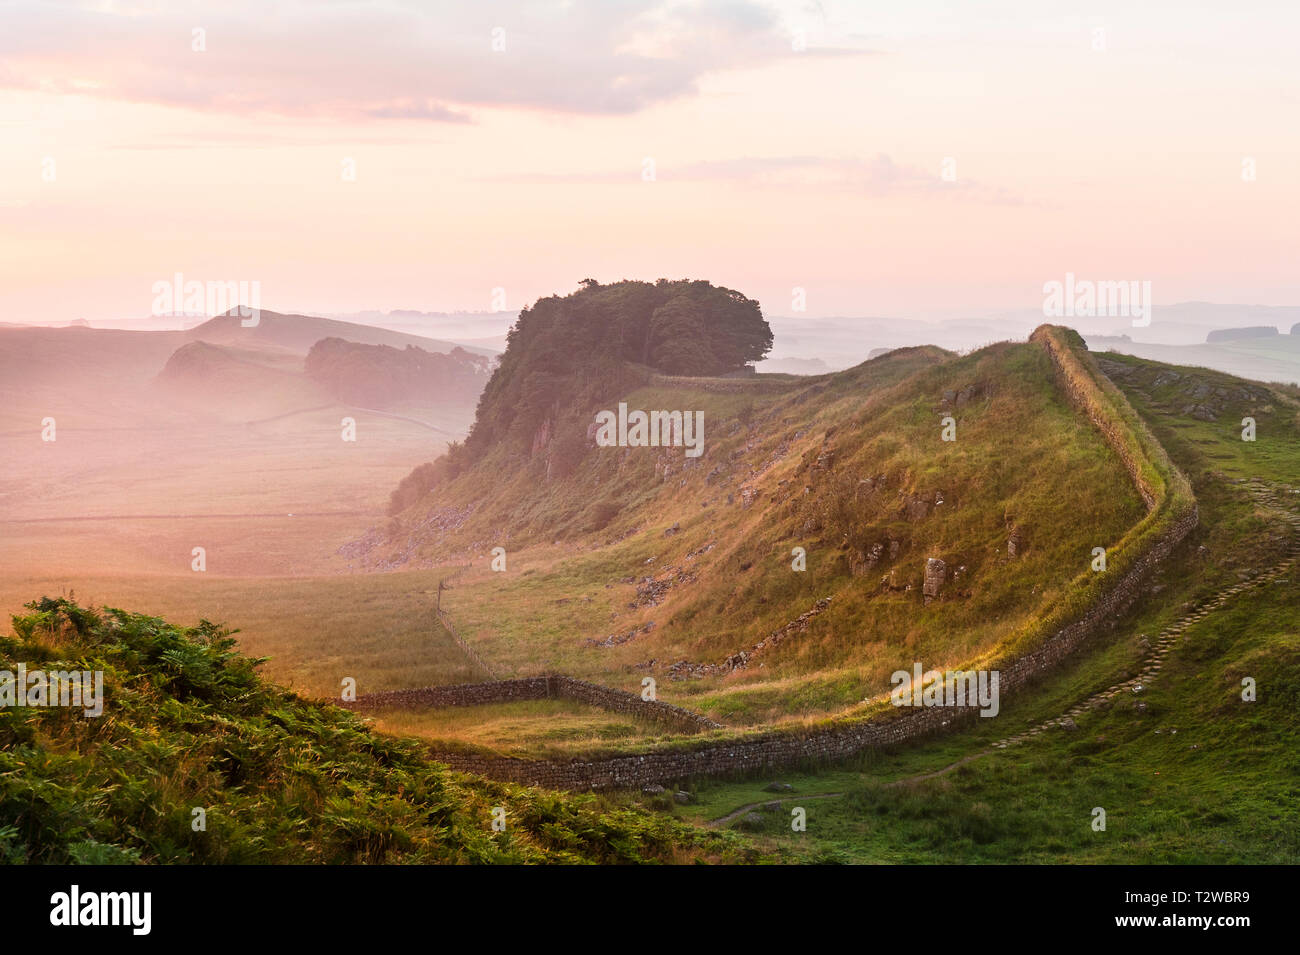 Hadrian's Wall at dawn with early morning mist near Housesteads Crag - Stock Image